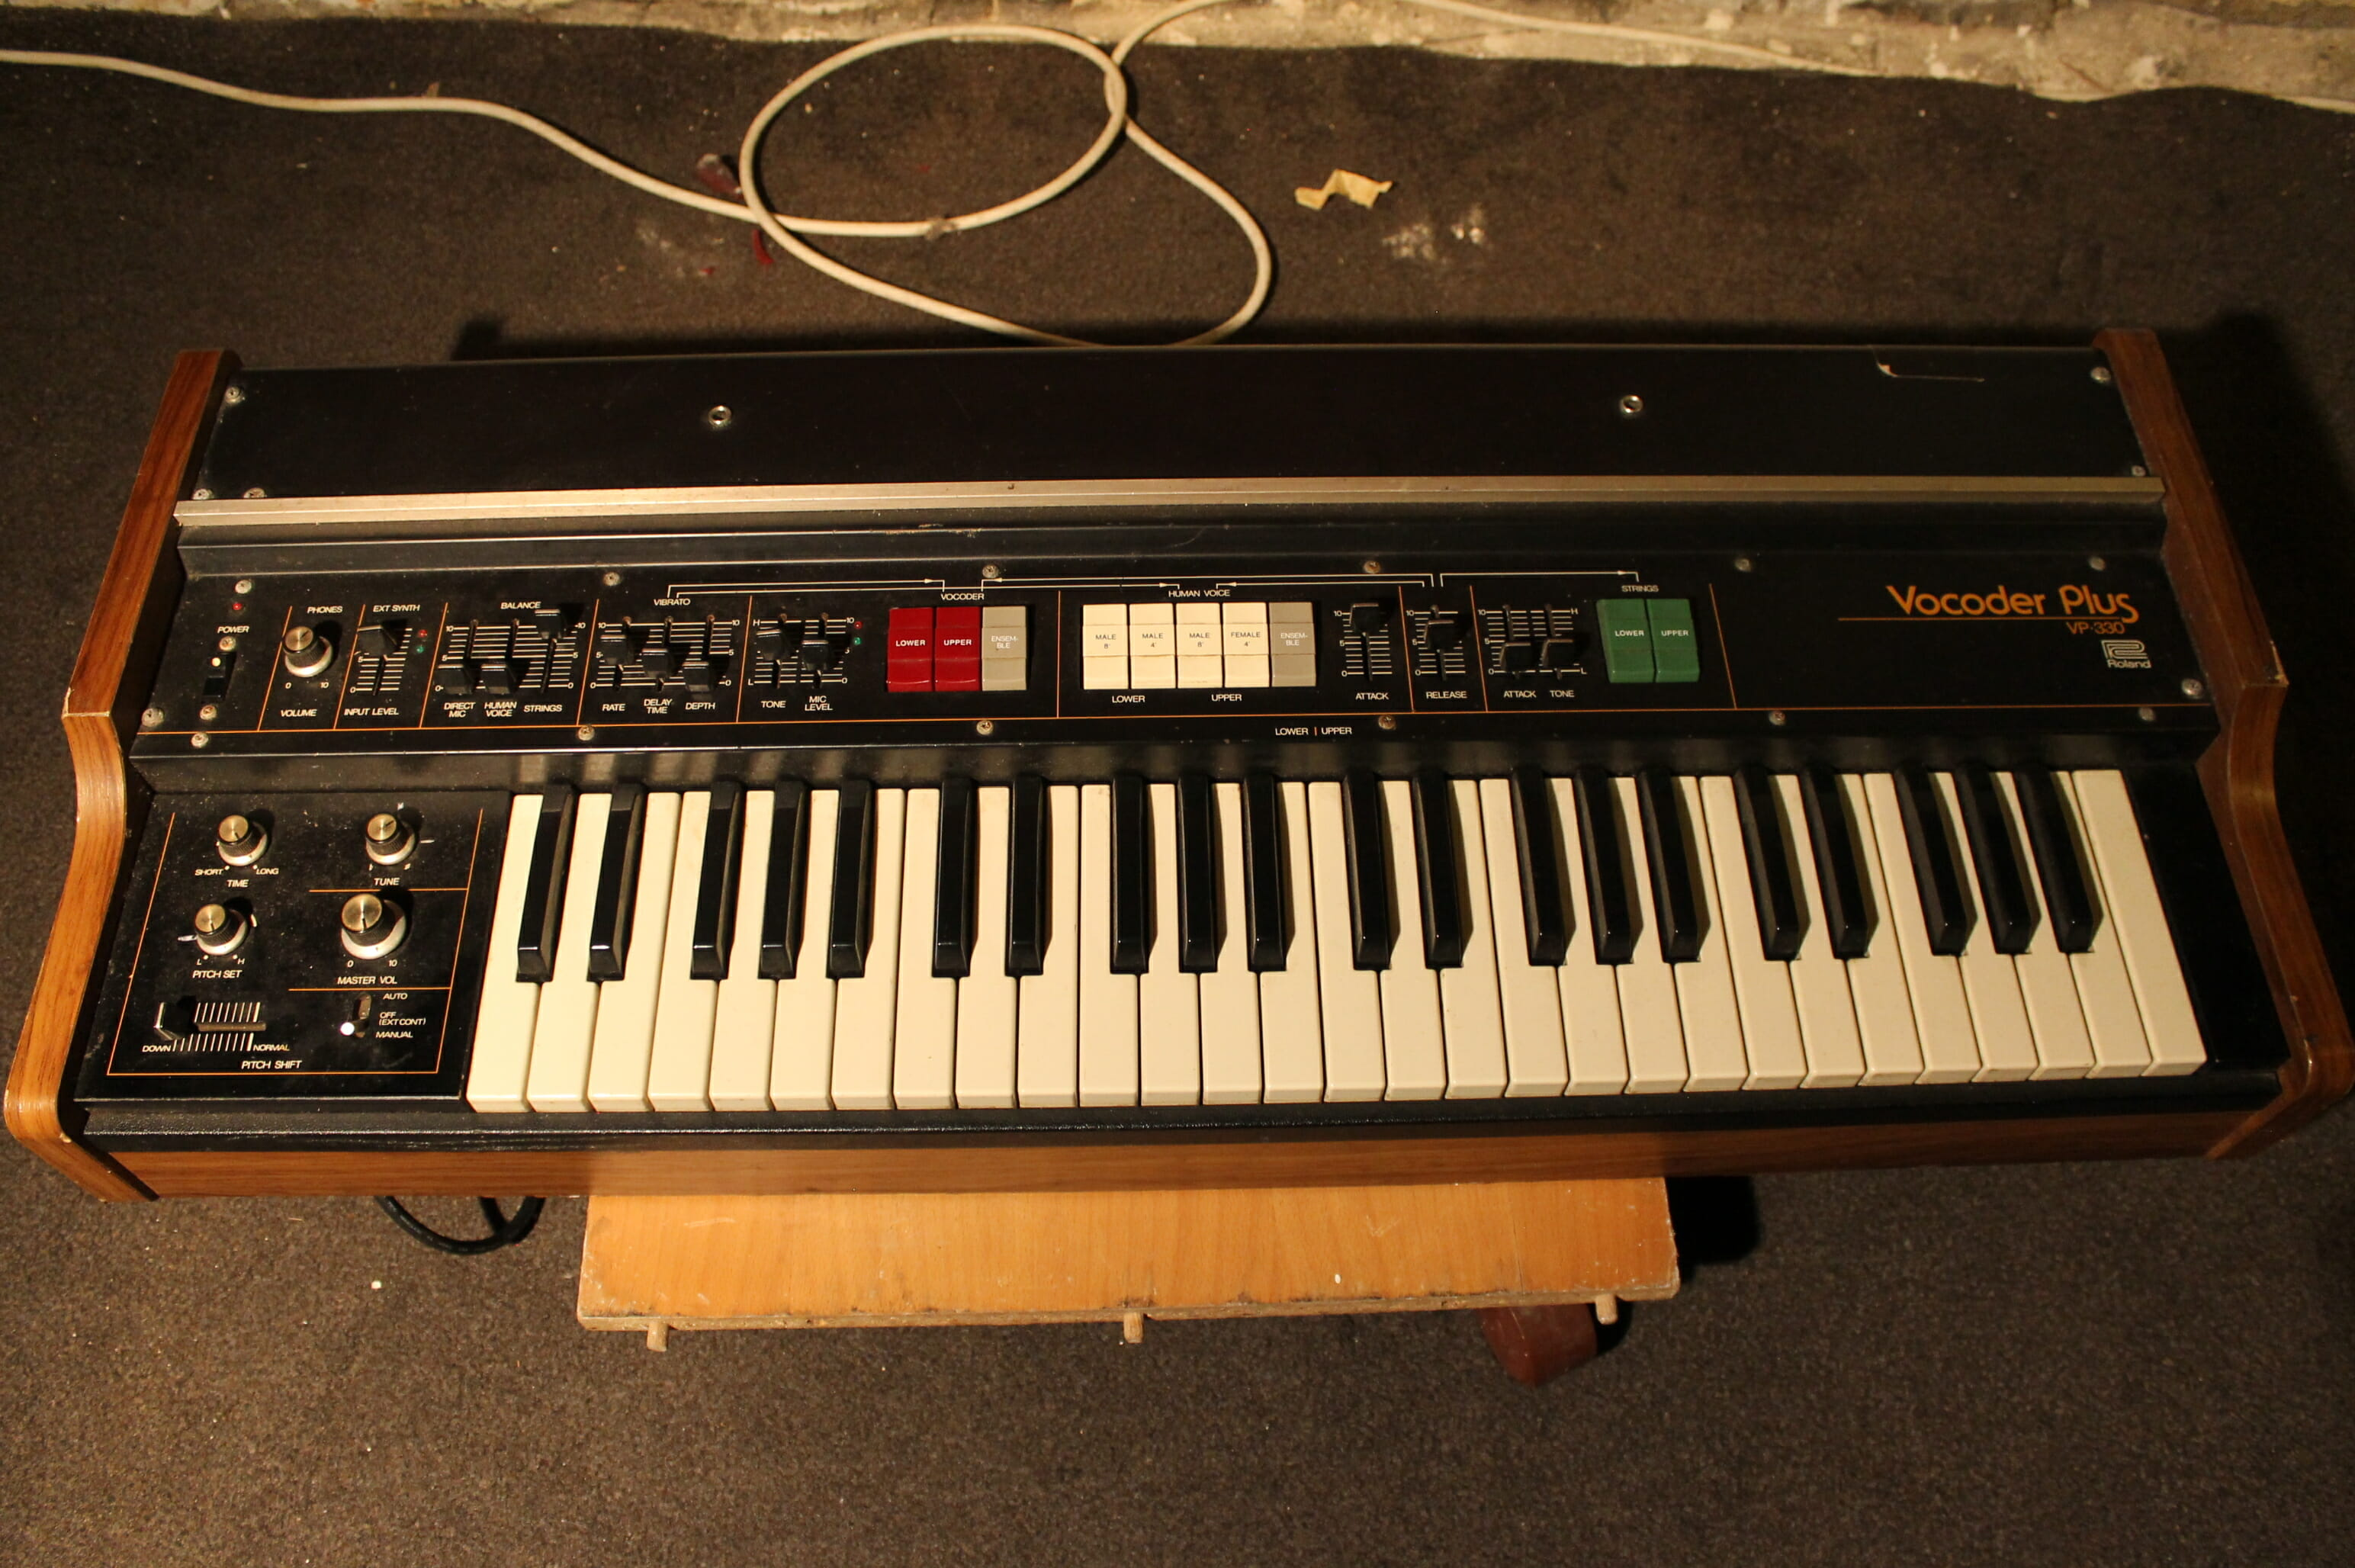 Roland Vocoder Plus VP330 820196